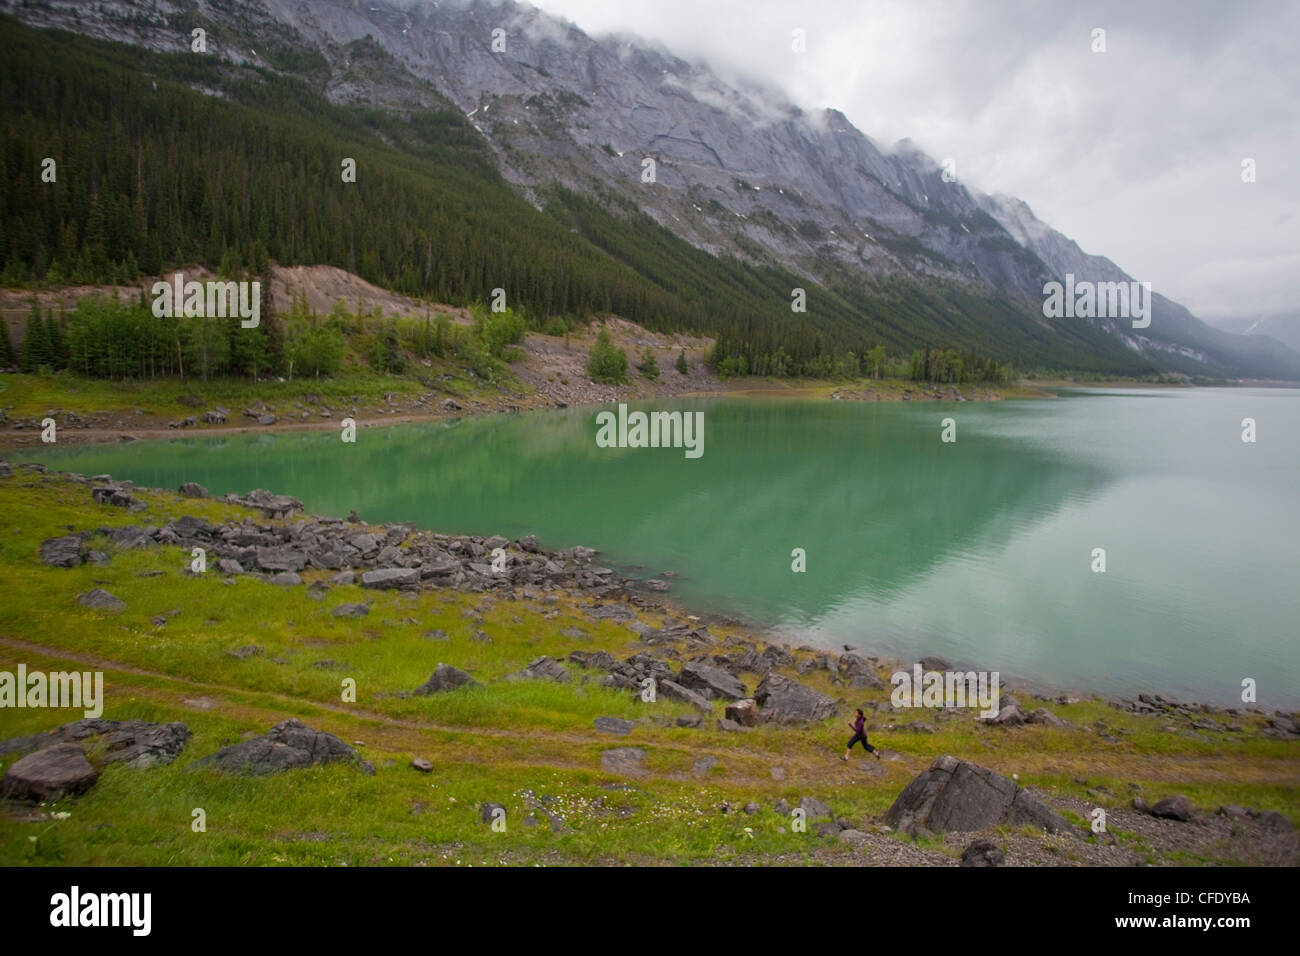 A young asian woman trail running along the shores of Medicine Lake, Jasper National Park, Alberta, Canada - Stock Image